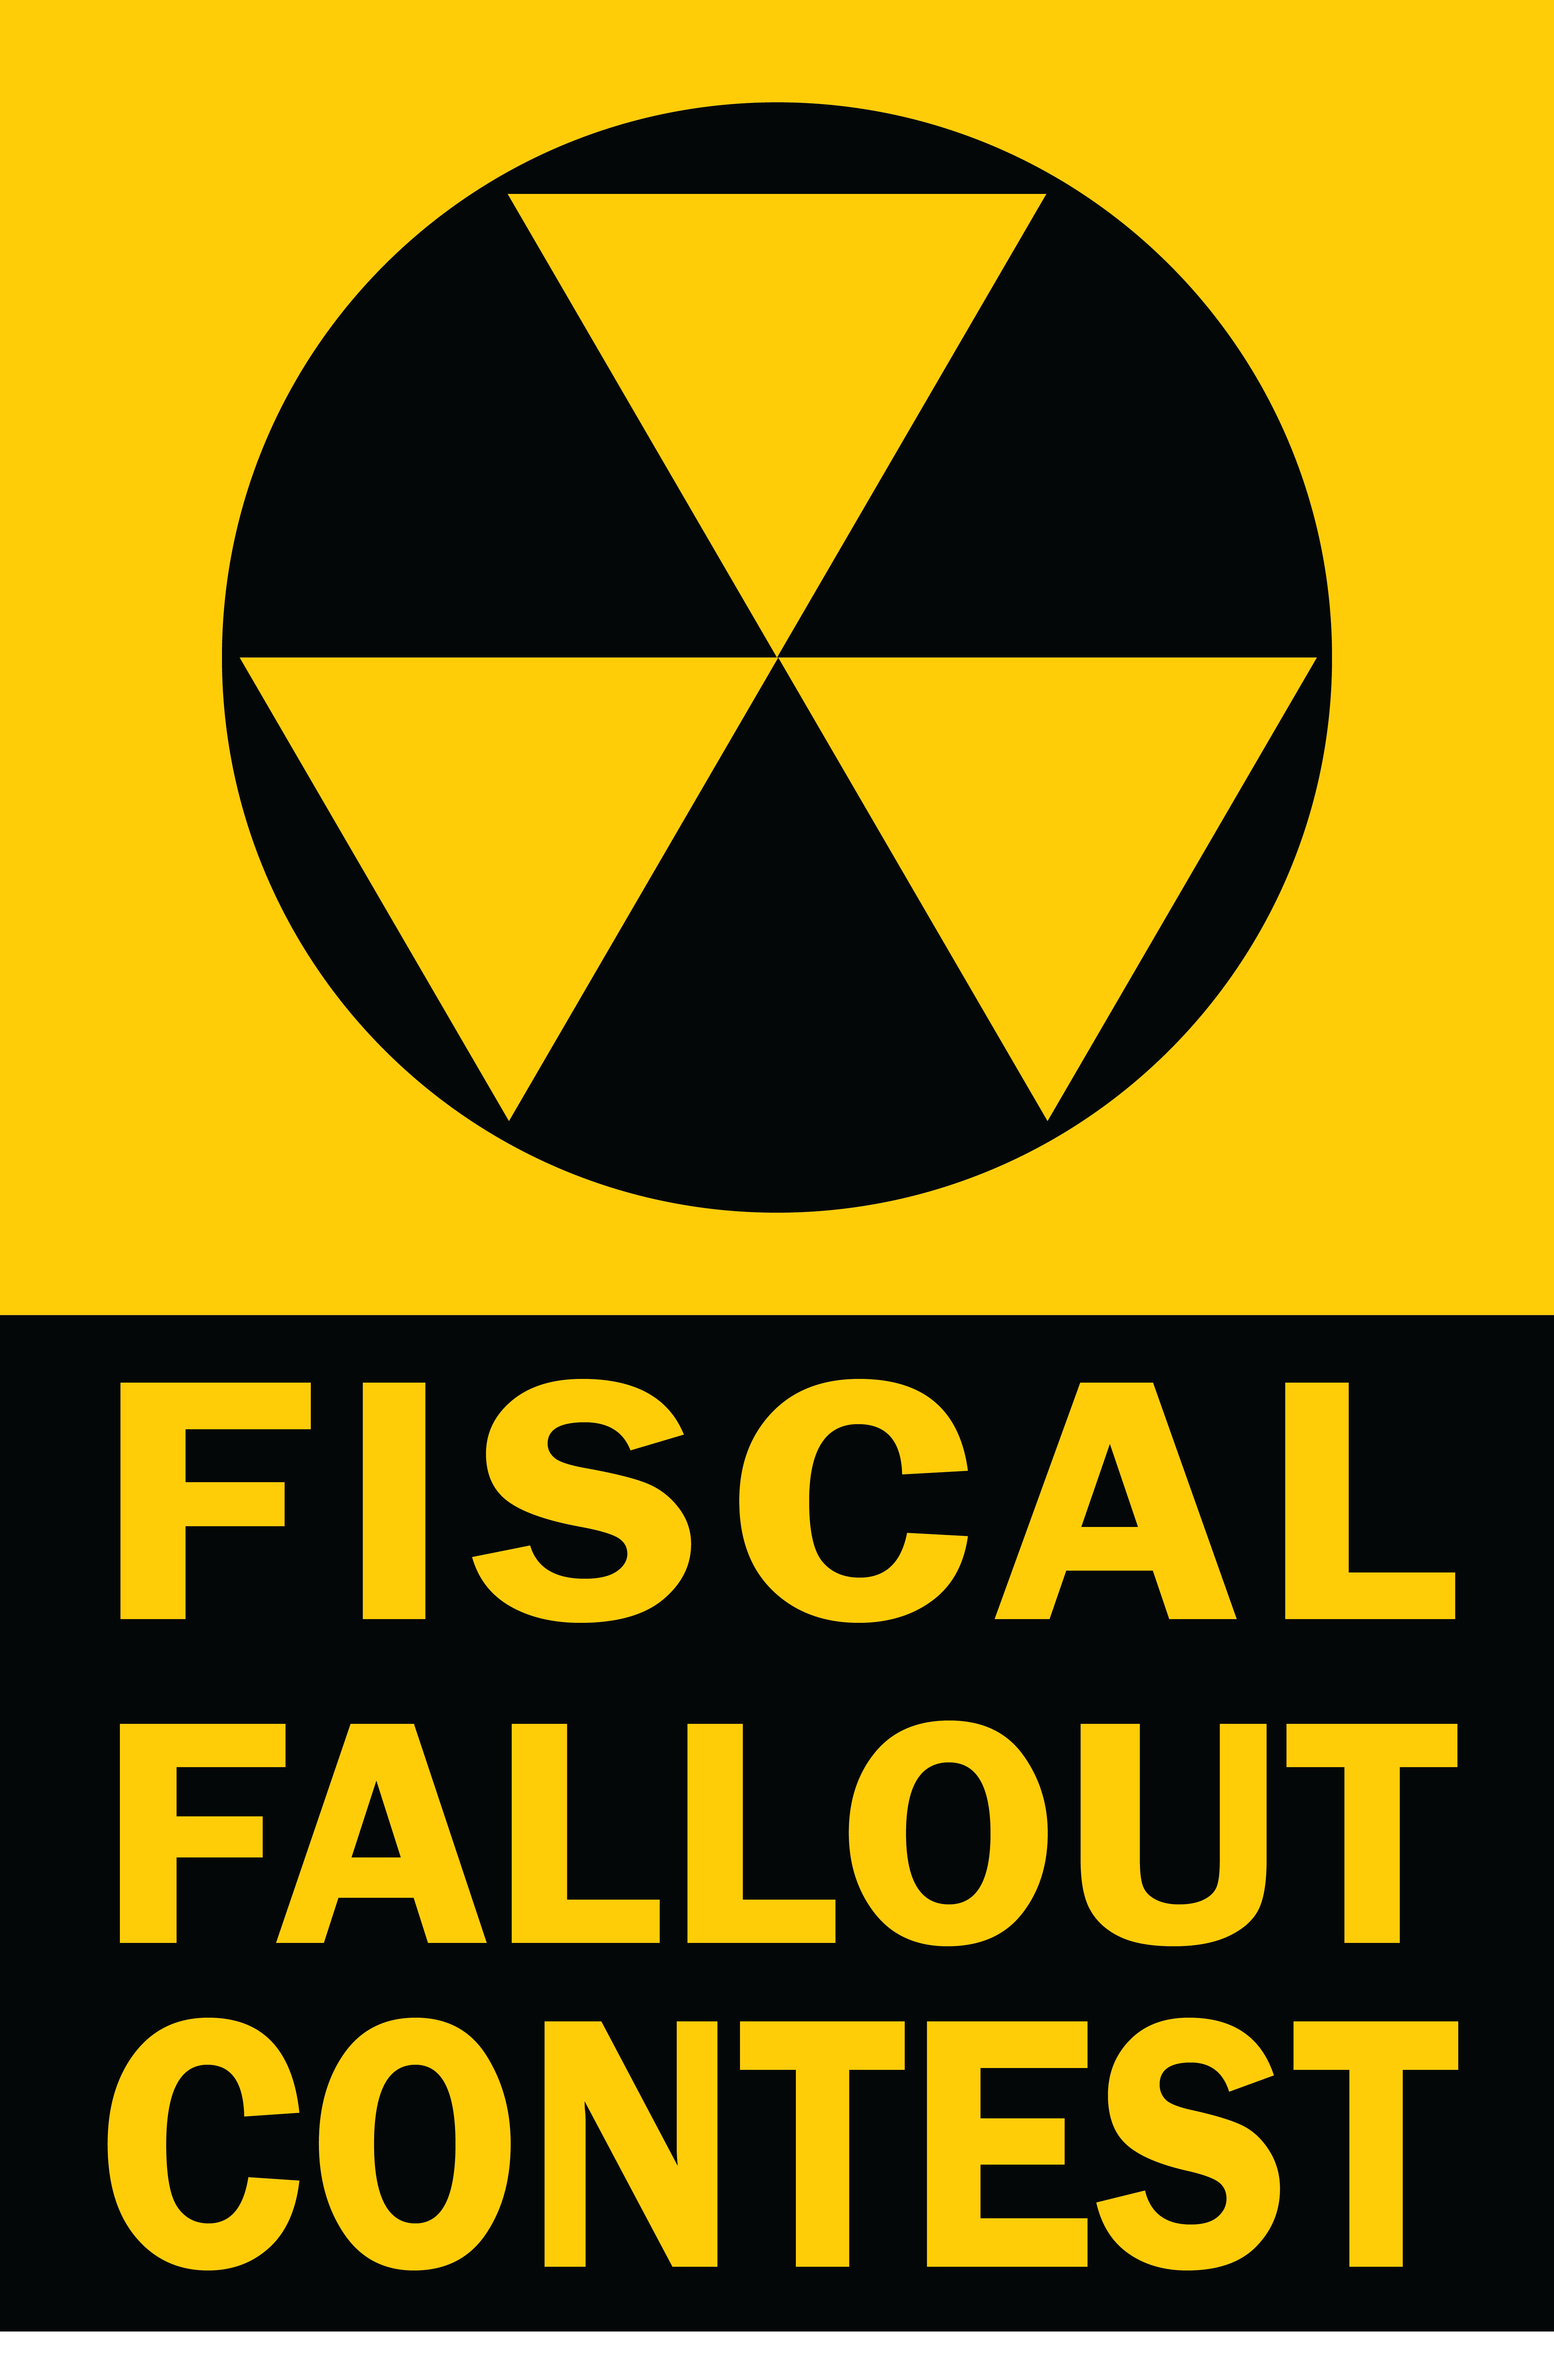 CRFB Fiscal Fallout Contest Logo